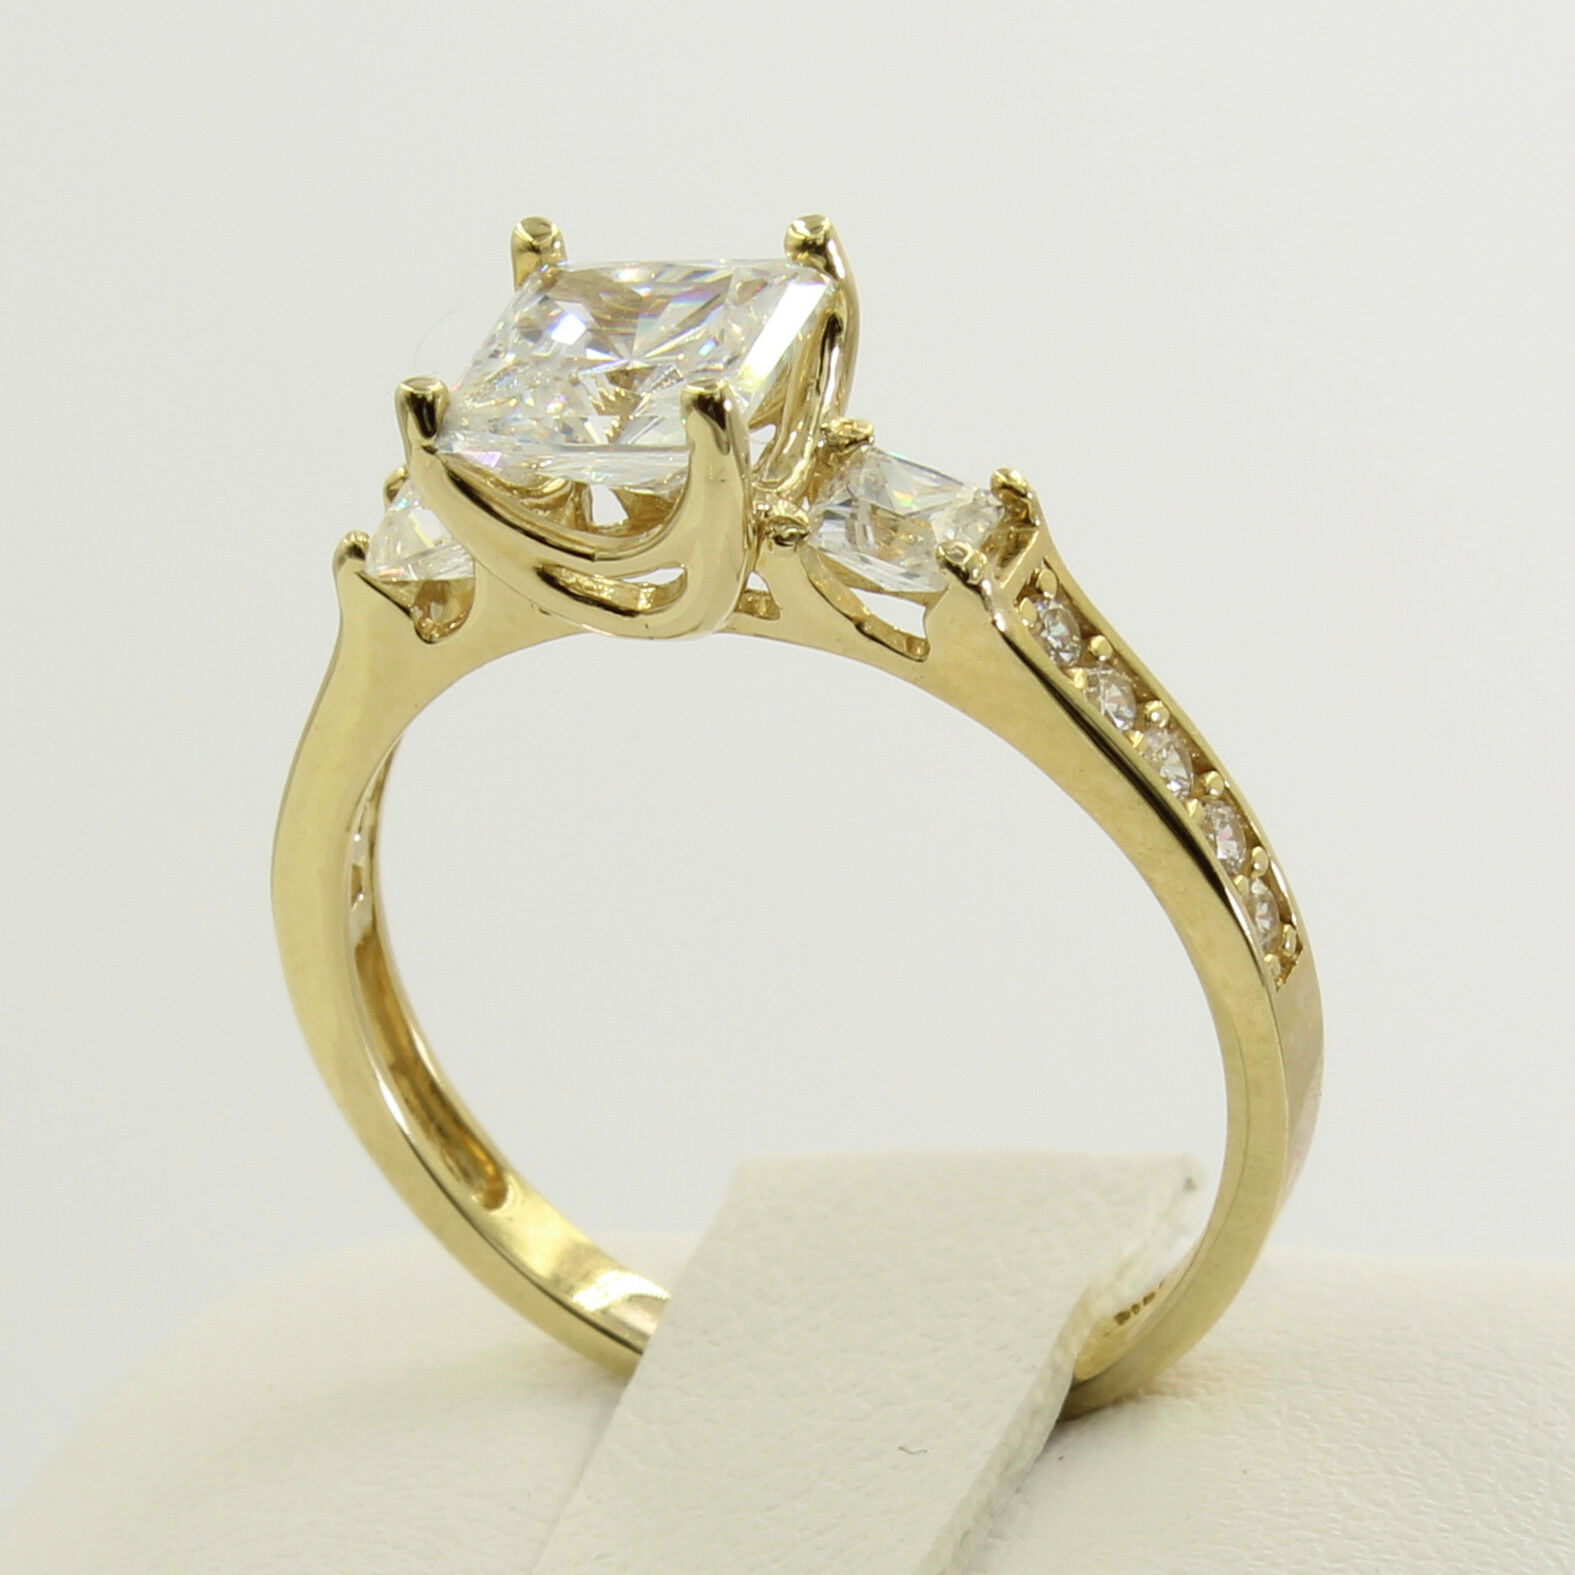 2.5 Ct 14K Real Yellow Gold Princess Cut 3 Stone Engagement Wedding Promise  Ring фото a4ce3dd2253